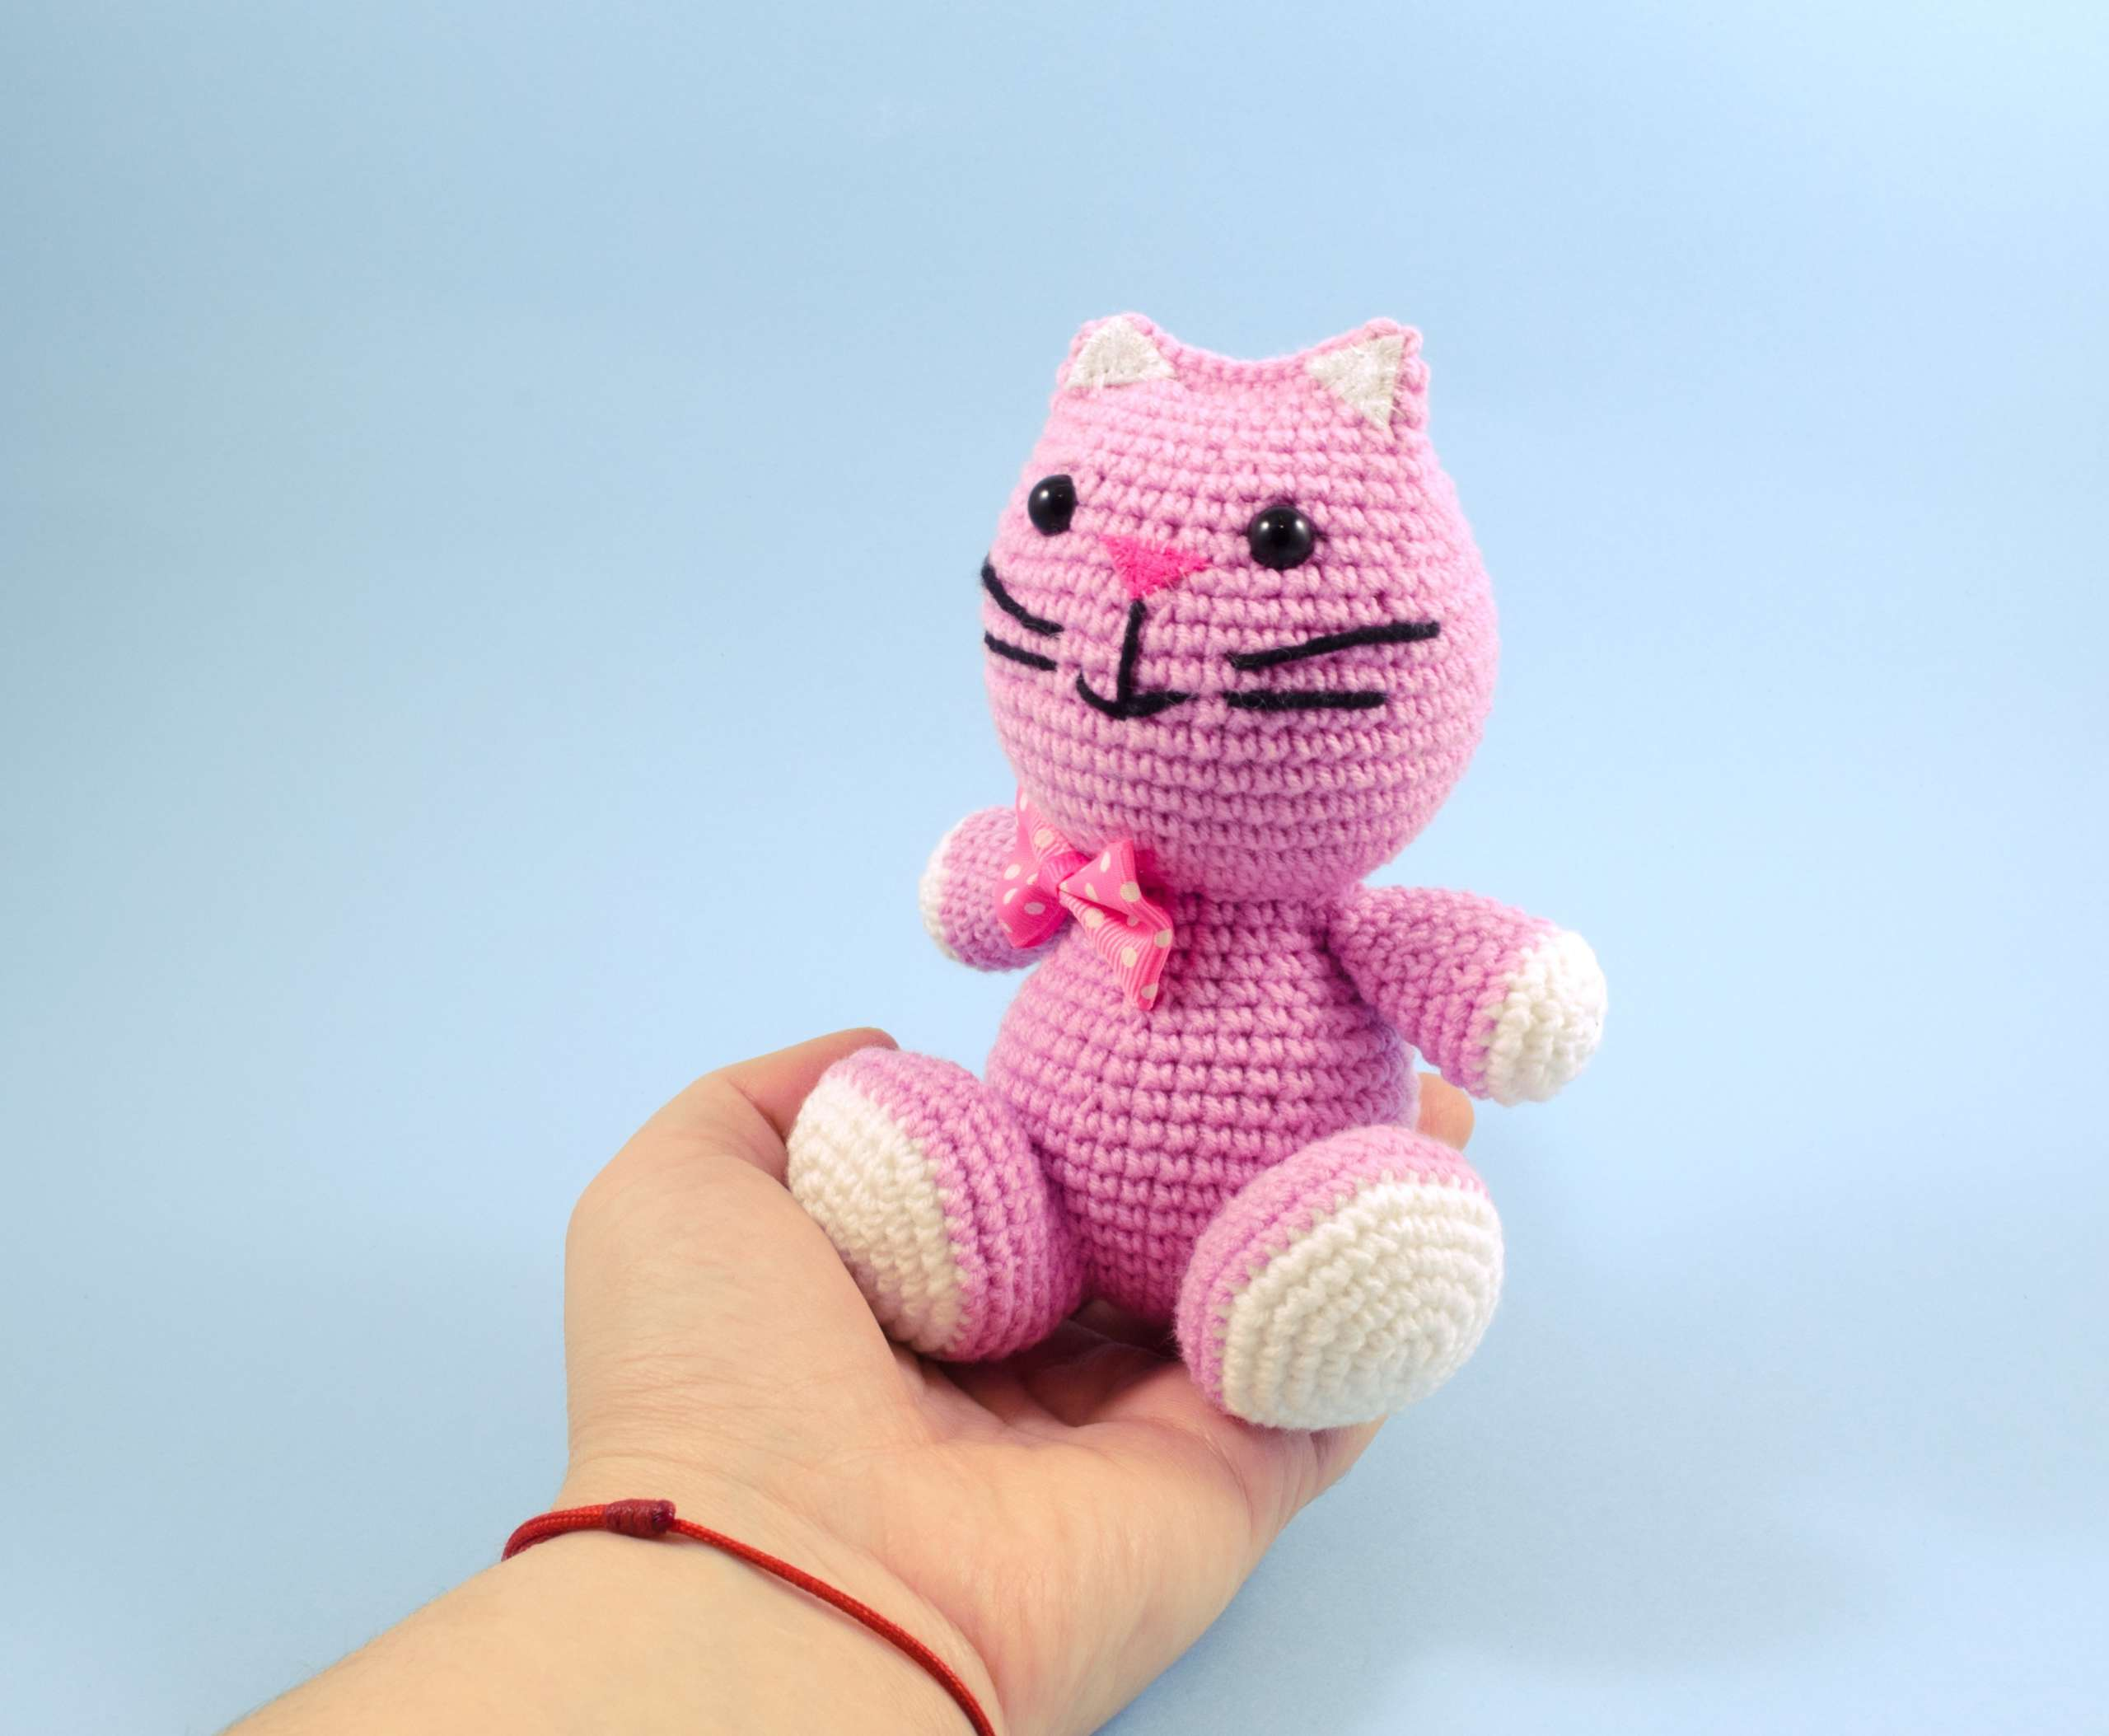 holding in hand crochet pink kitten